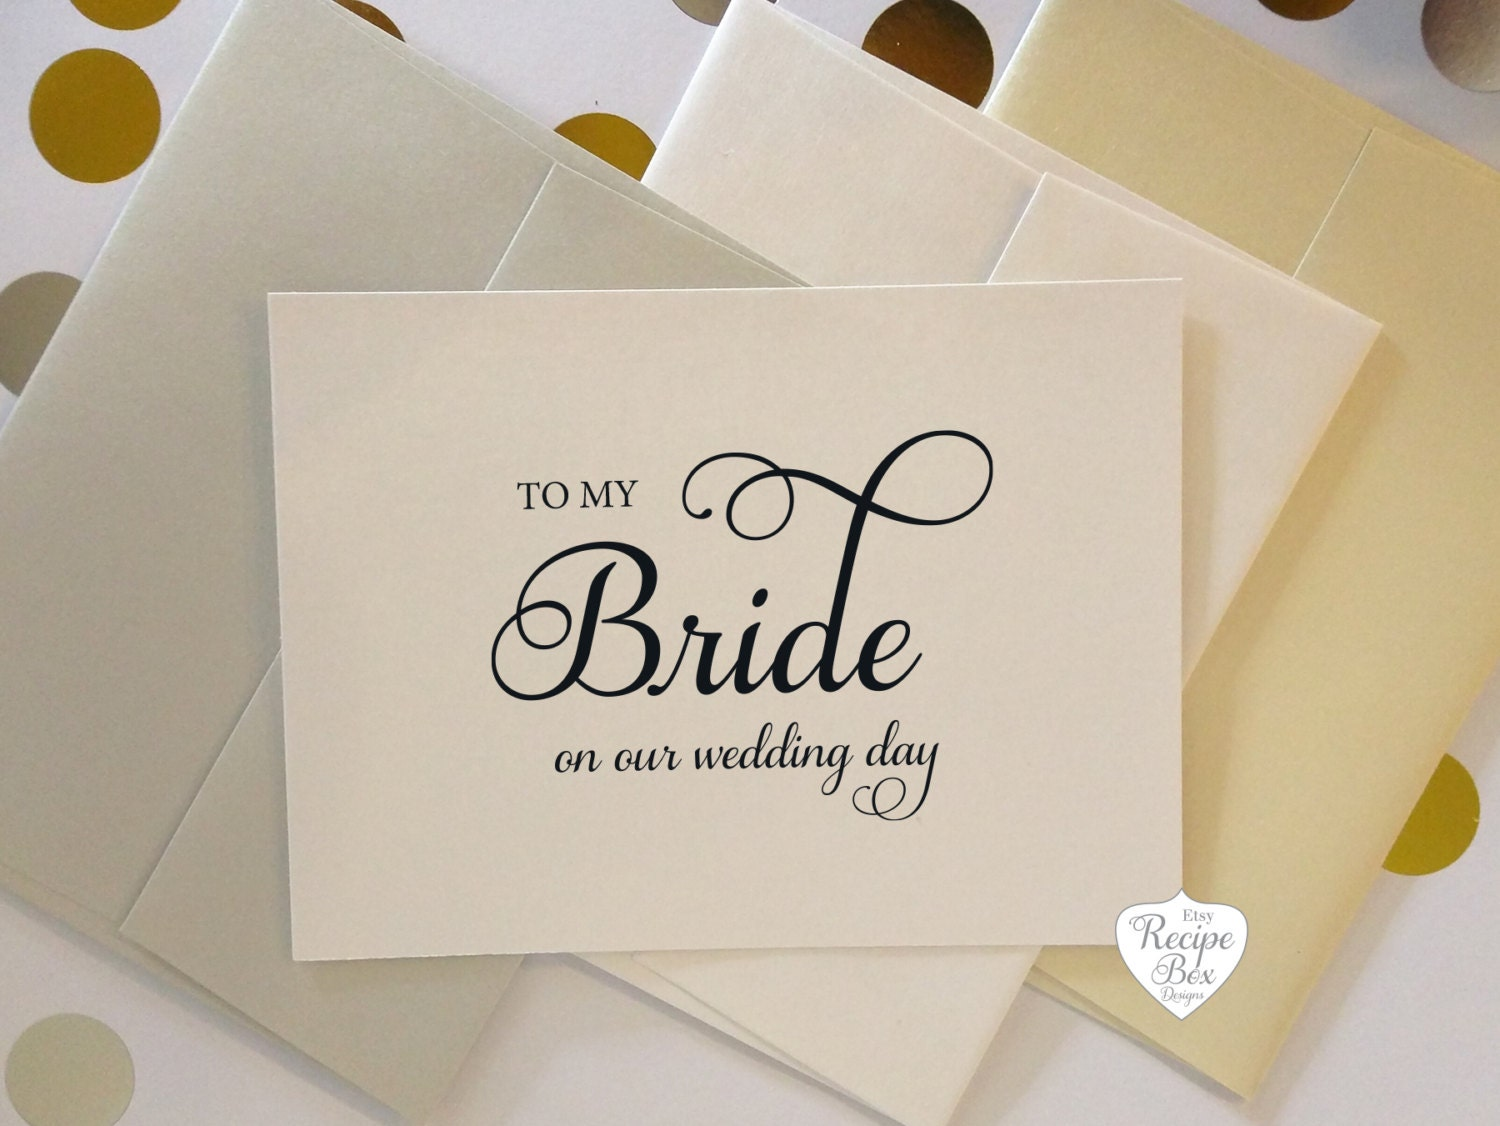 To my bride on our wedding day to my groom wedding card greeting to my bride on our wedding day to my groom wedding card greeting card wedding day card to my bride card groom card set of 2 cards m4hsunfo